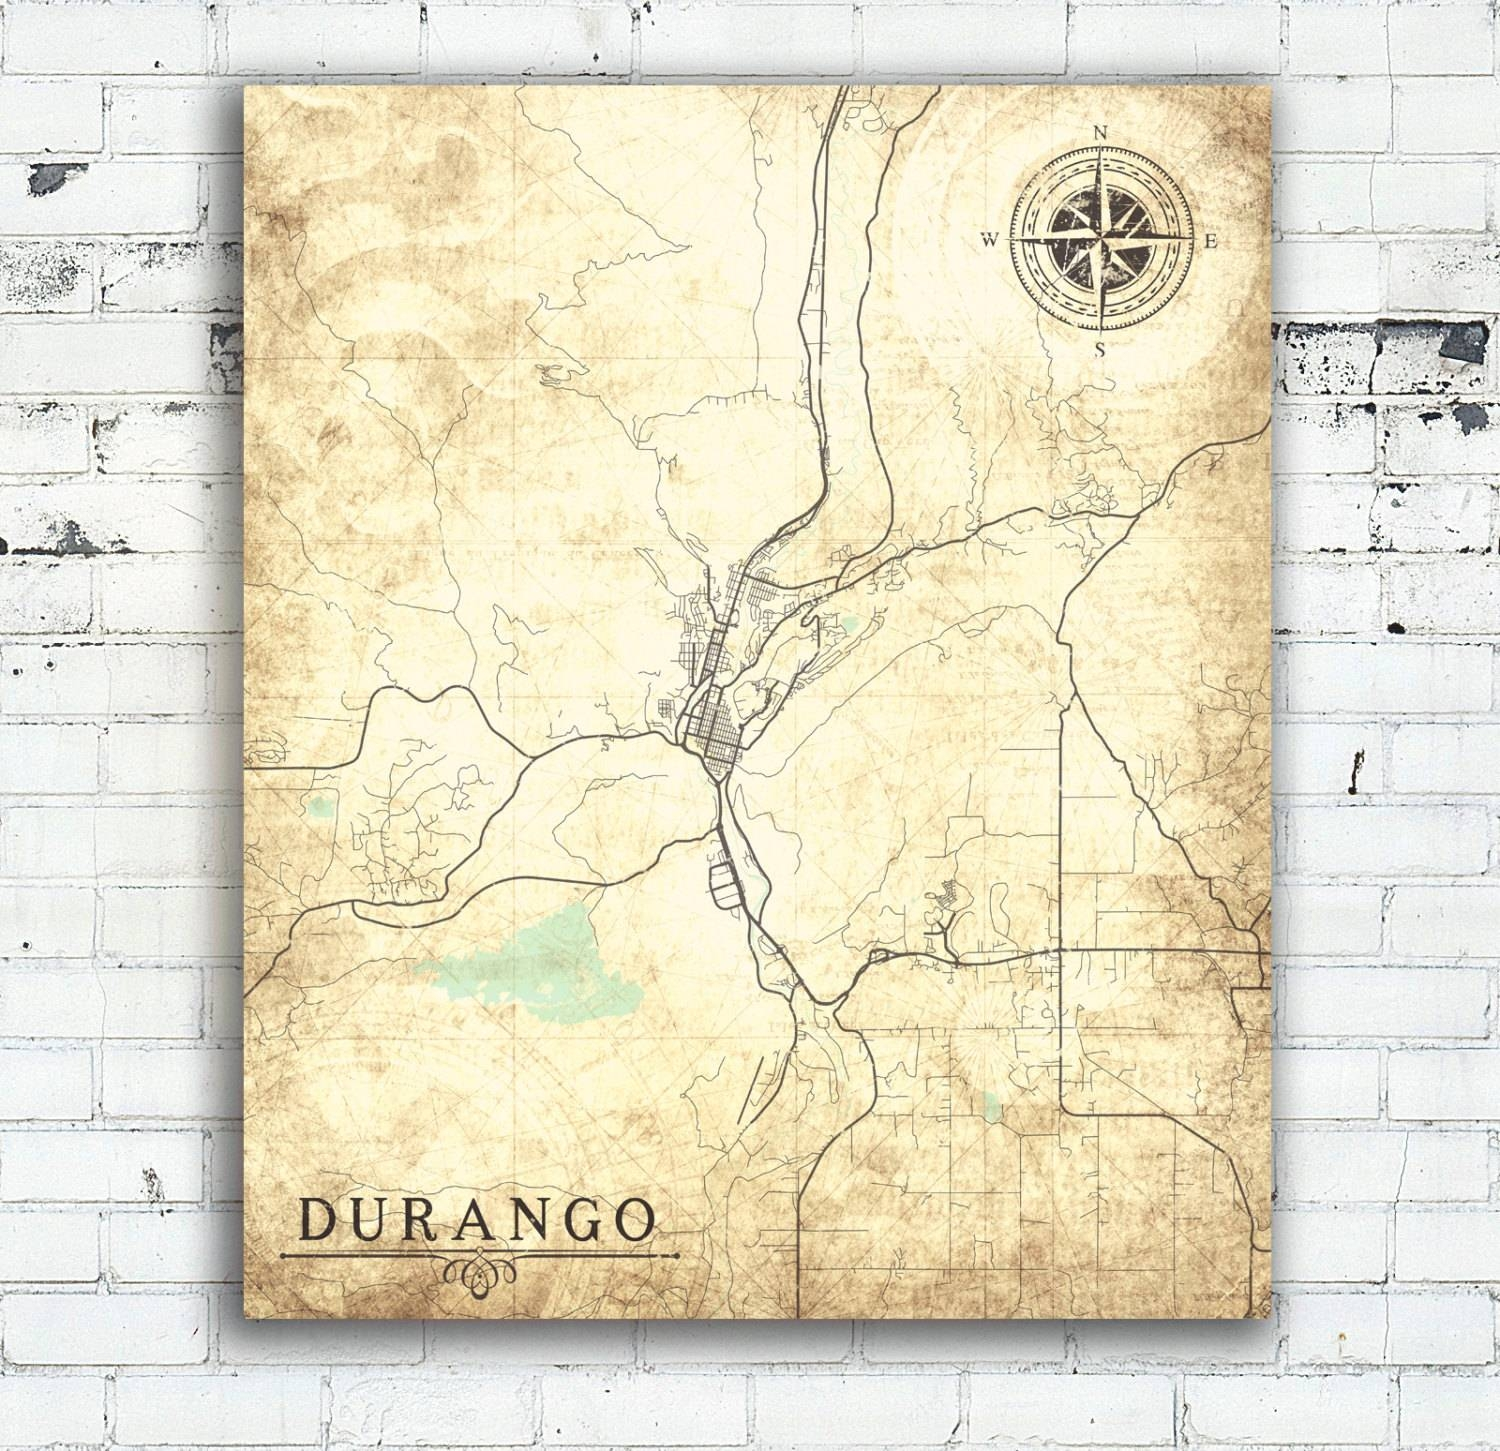 Durango Co Colorado Vintage Map Durango Vintage City Wall Art Intended For Most Current City Prints Map Wall Art (View 11 of 20)